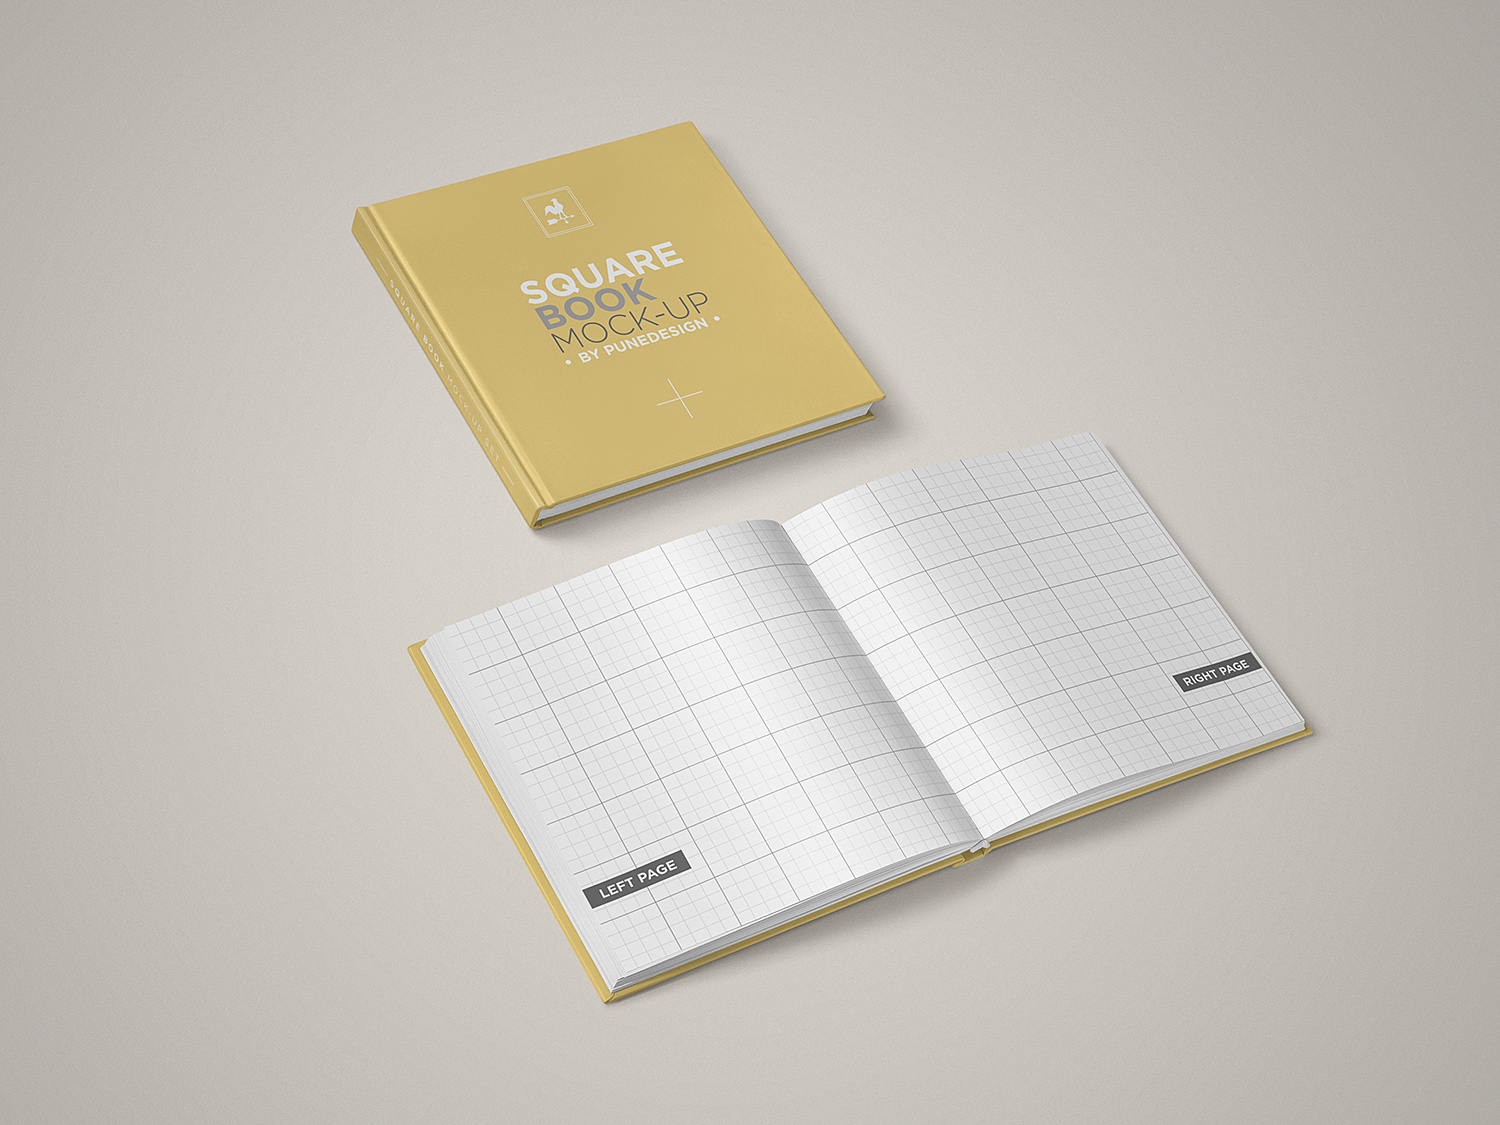 Square Book Mock-Up Set Free Sample